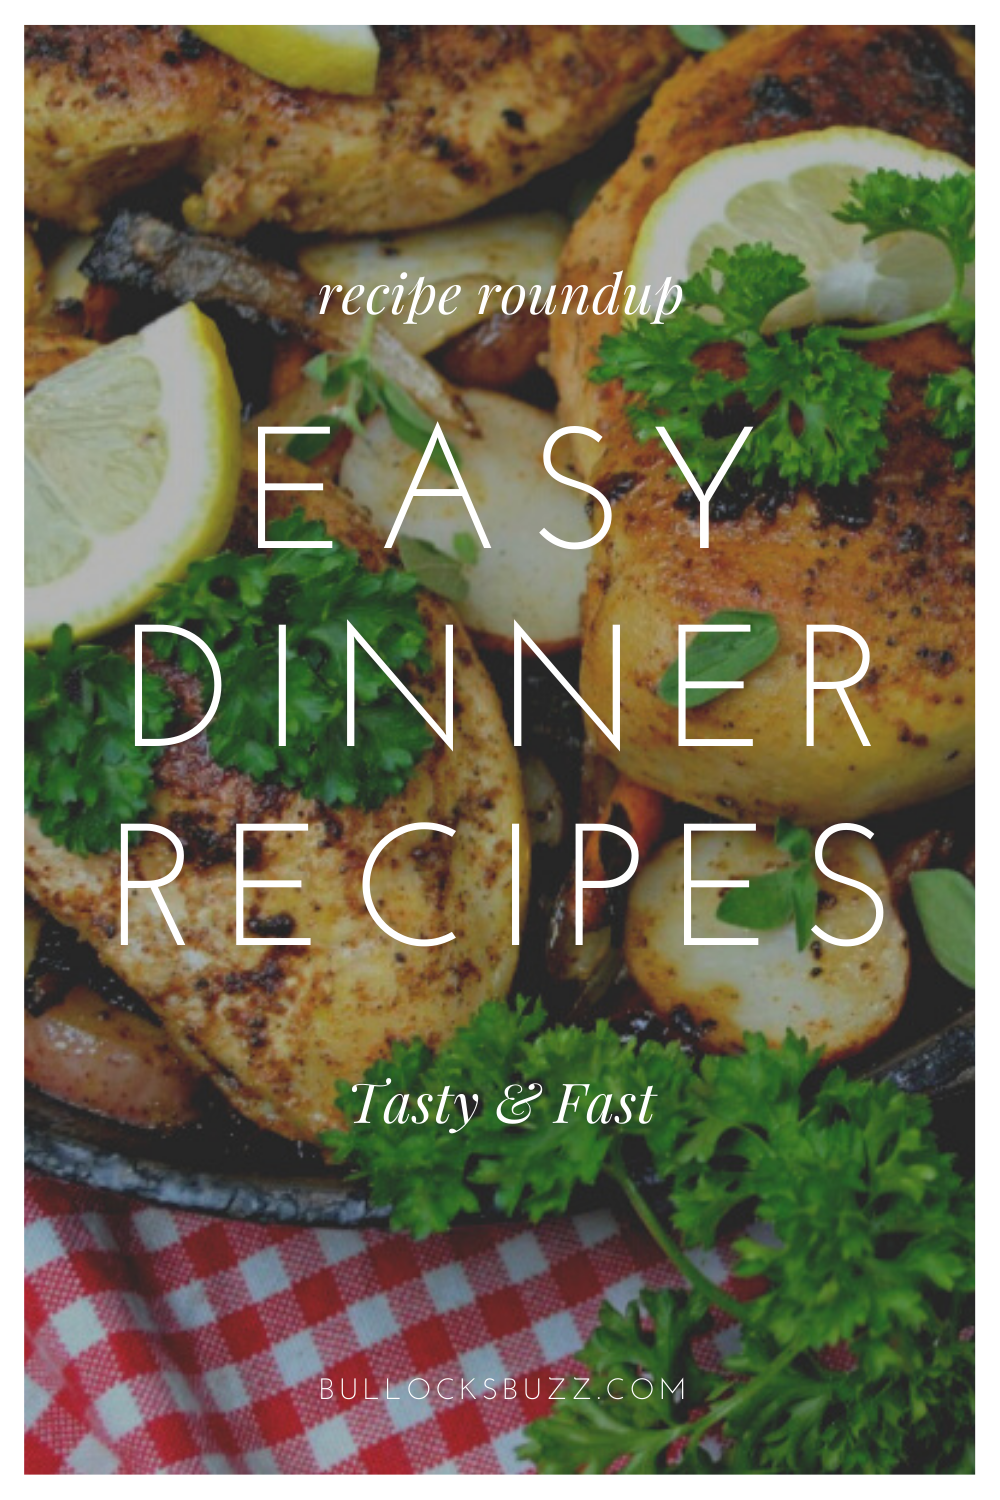 If you're short on time and need to get dinner on the table fast, I'm sure you'll find something perfect in this easy dinner recipe roundup! #bullocksbuzz #recipes #easyrecipes #dinner #reciperoundup